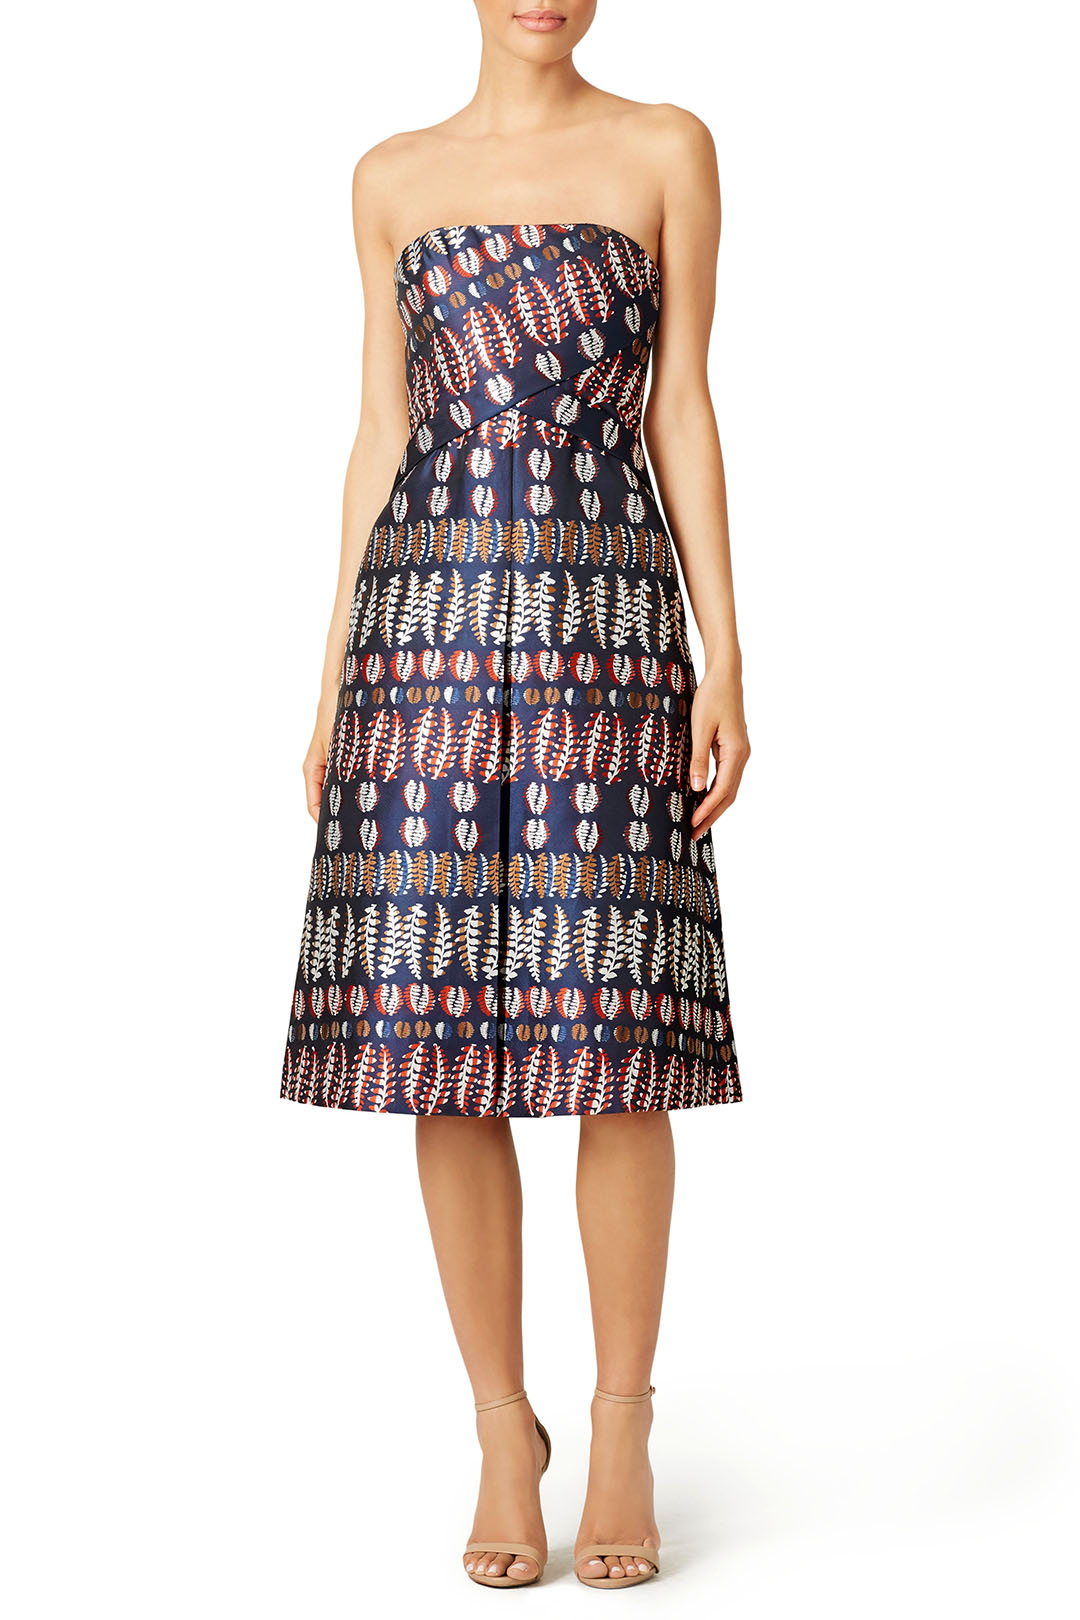 Tory Burch - Metallic Jacquard Dress